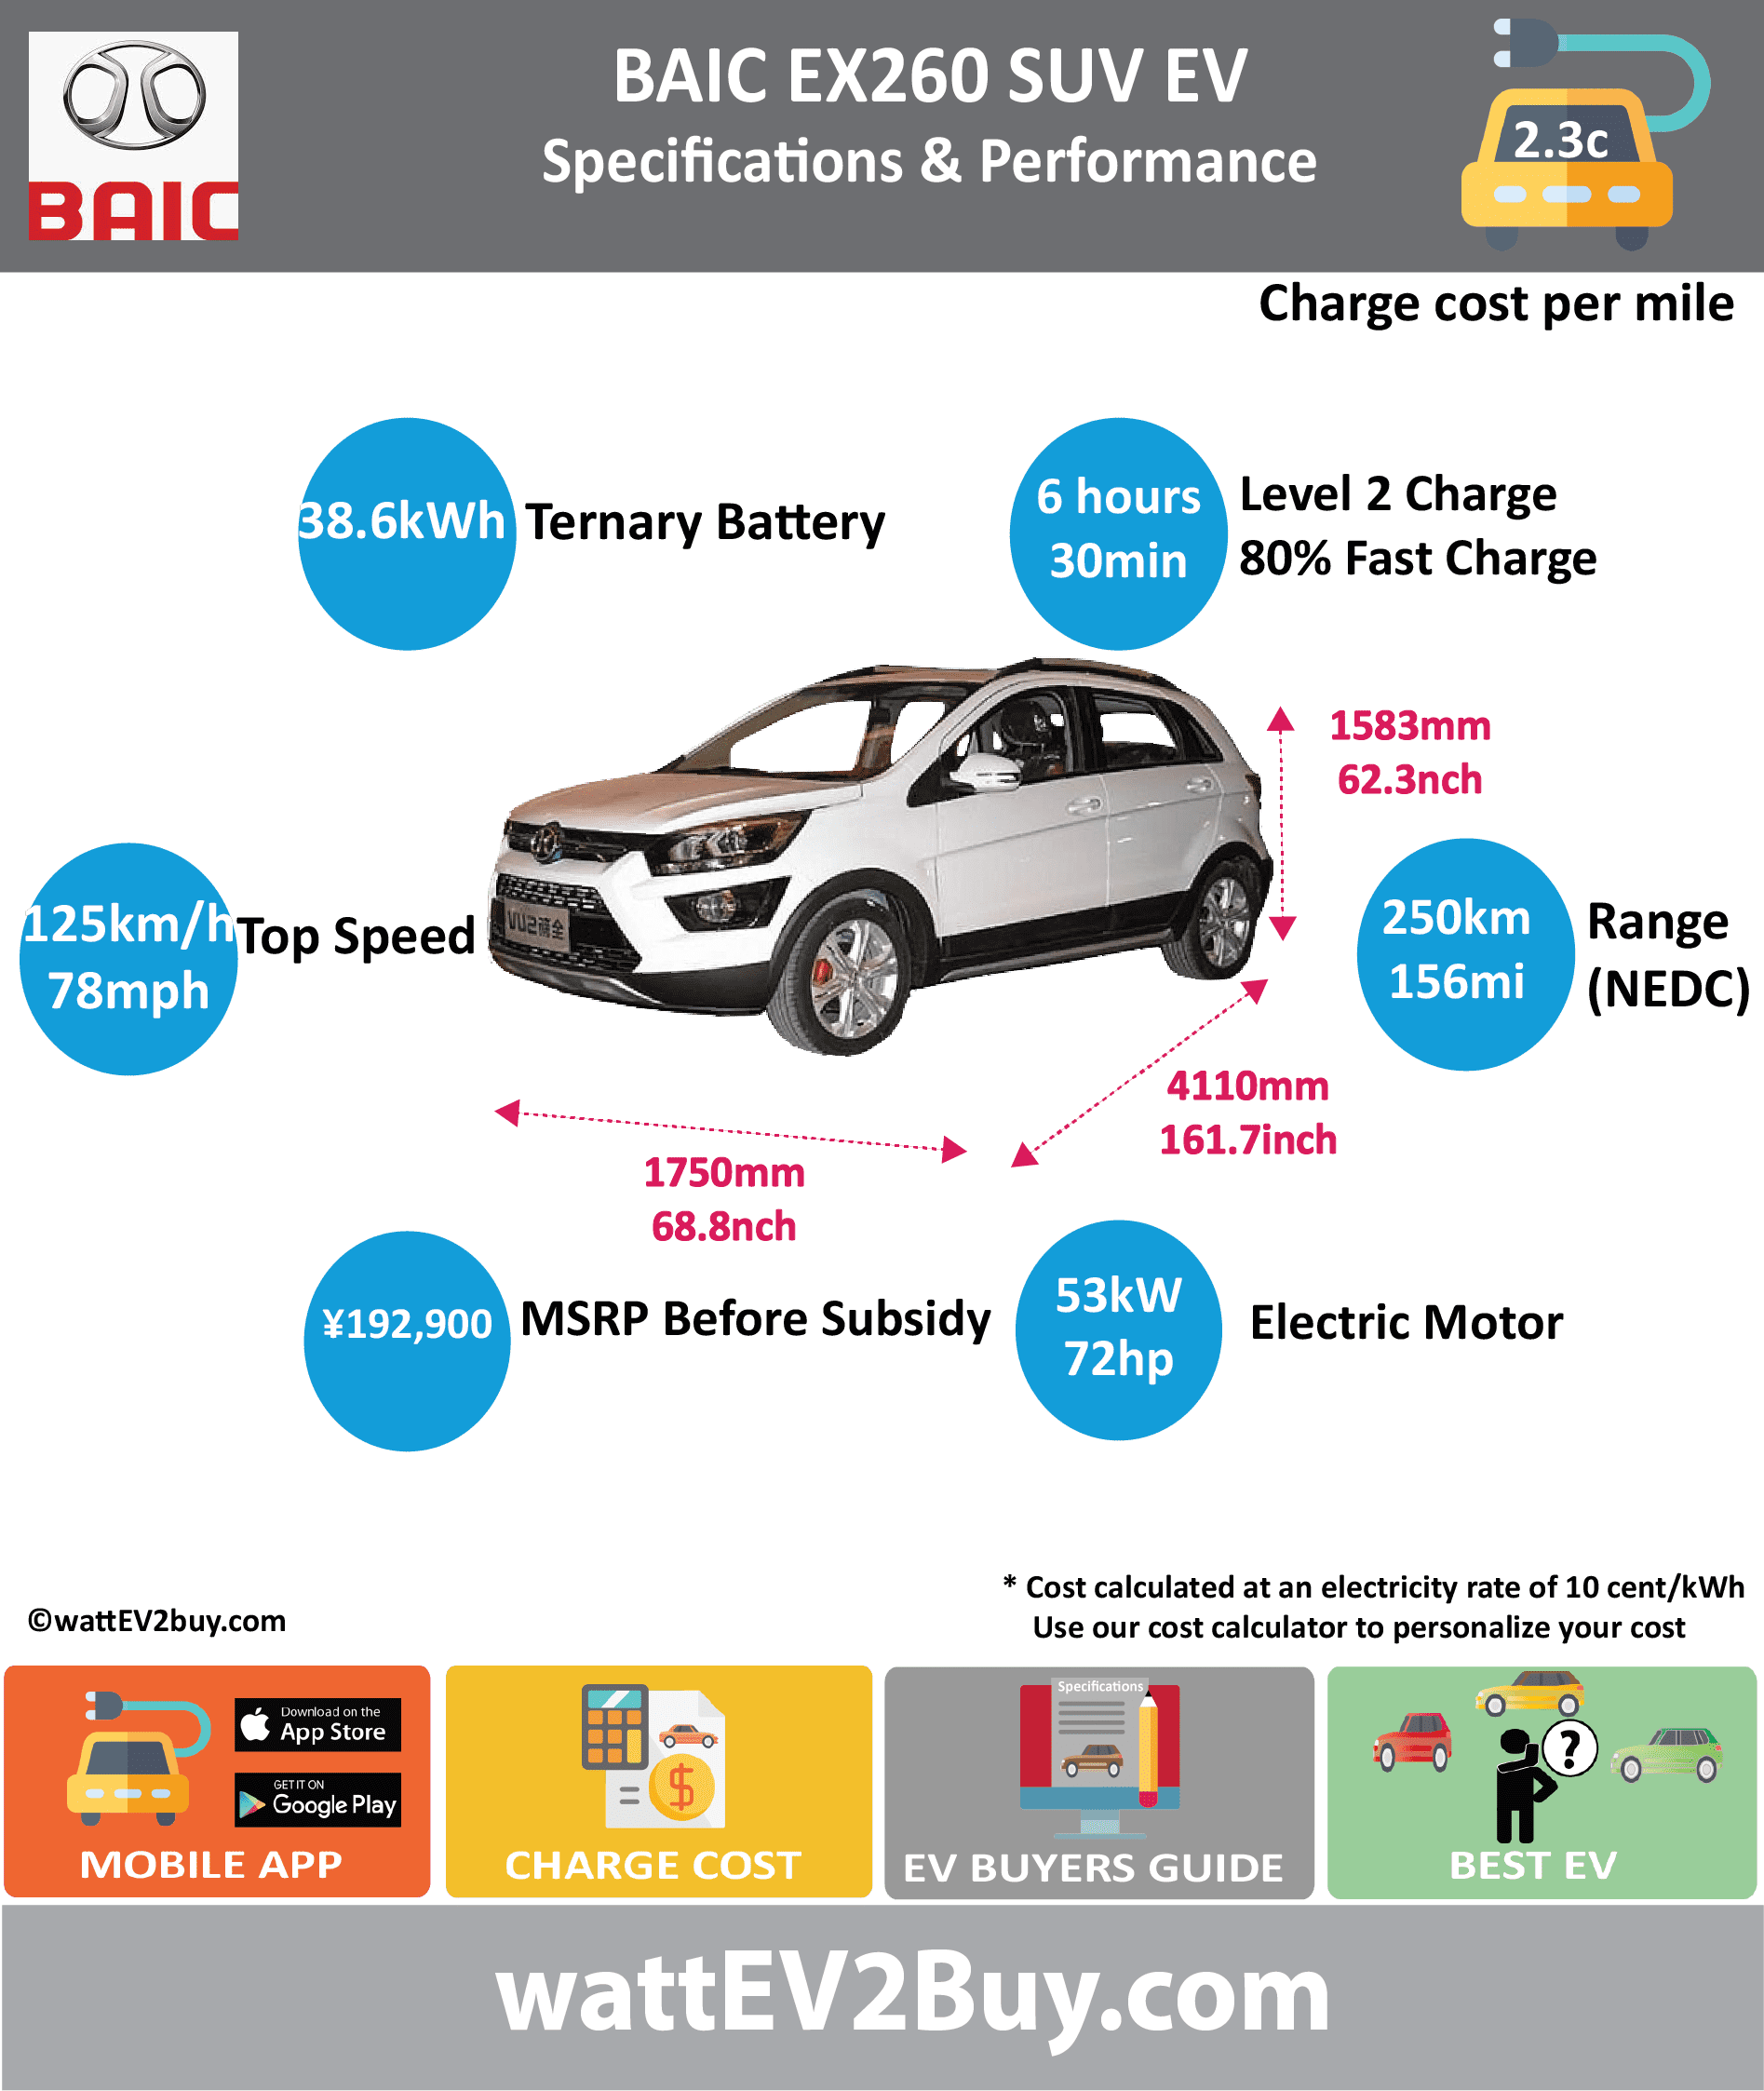 BAIC EX260 SUV EV SPECS	 wattev2Buy.com	2017 Battery Chemistry	Tenary Battery Capacity kWh	41 Battery Nominal rating kWh	38.6 Voltage V	 Amps Ah	 Cells	 Modules	 Weight (kg)	332 Cell Type	 Cooling	 Cycles	 Depth of Discharge (DOD)	 Energy Density Wh/kg	 Battery Manufacturer	 Battery Warranty - years	 Battery Warranty - km	 Battery Electric Range - at constant 38mph	199 Battery Electric Range - at constant 60km/h	318 Battery Electric Range - NEDC Mi	156 Battery Electric Range - NEDC km	250 Electric Top Speed - mph	78 Electric Top Speed - km/h	125 Acceleration 0 - 100km/h sec	 Acceleration 0 - 50km/h sec	 Onboard Charger kW	 LV 1 Charge kW	 LV 1 Charge Time (Hours)	 LV 2 Charge kW	 LV 2 Charge Time (Hours)	6 LV 3 CCS/Combo kW	 LV 3 Charge Time (min to 80%)	30 Charge Connector	 MPGe Combined - miles	 MPGe Combined - km	 MPGe City - miles	 MPGe City - km	 MPGe Highway - miles	 MPGe Highway - km	 Max Power - hp	72 Max Power - kW	53 Max Torque - lb.ft	 Max Torque - N.m	 Drivetrain	 Electric Motor Rear	 Electric Motor Front	 Motor Type	 Electric Motor Output kW	 Transmission	 Energy Consumption kWh/100km	 CHINA MSRP (before incentives & destination)	 ¥192,900.00  MSRP after incentives	 ¥126,900.00  Vehicle	 Doors	5 Seating	5 Dimensions	 GVWR (kg)	 Curb Weight (kg)	1410 Payload Capacity (lbs)	 Towing Capacity (lbs)	 Ground Clearance (mm)	135 Lenght (mm)	4110 Width (mm)	1750 Height (mm)	1583 Wheelbase (mm)	2519 Lenght (inc)	161.7 Width (inc)	68.8 Height (inc)	62.3 Wheelbase (inc)	99.1 Other	 Market	 Class	SUV Incentives	 Safety Level	 Unveiled	 Auto Show Unveil	 First Delivery	 Unique	 Based On	BAIC X25 Chinese Name	北汽EX260 Model Code	BJ7000U3D6-BEV WEBSITE